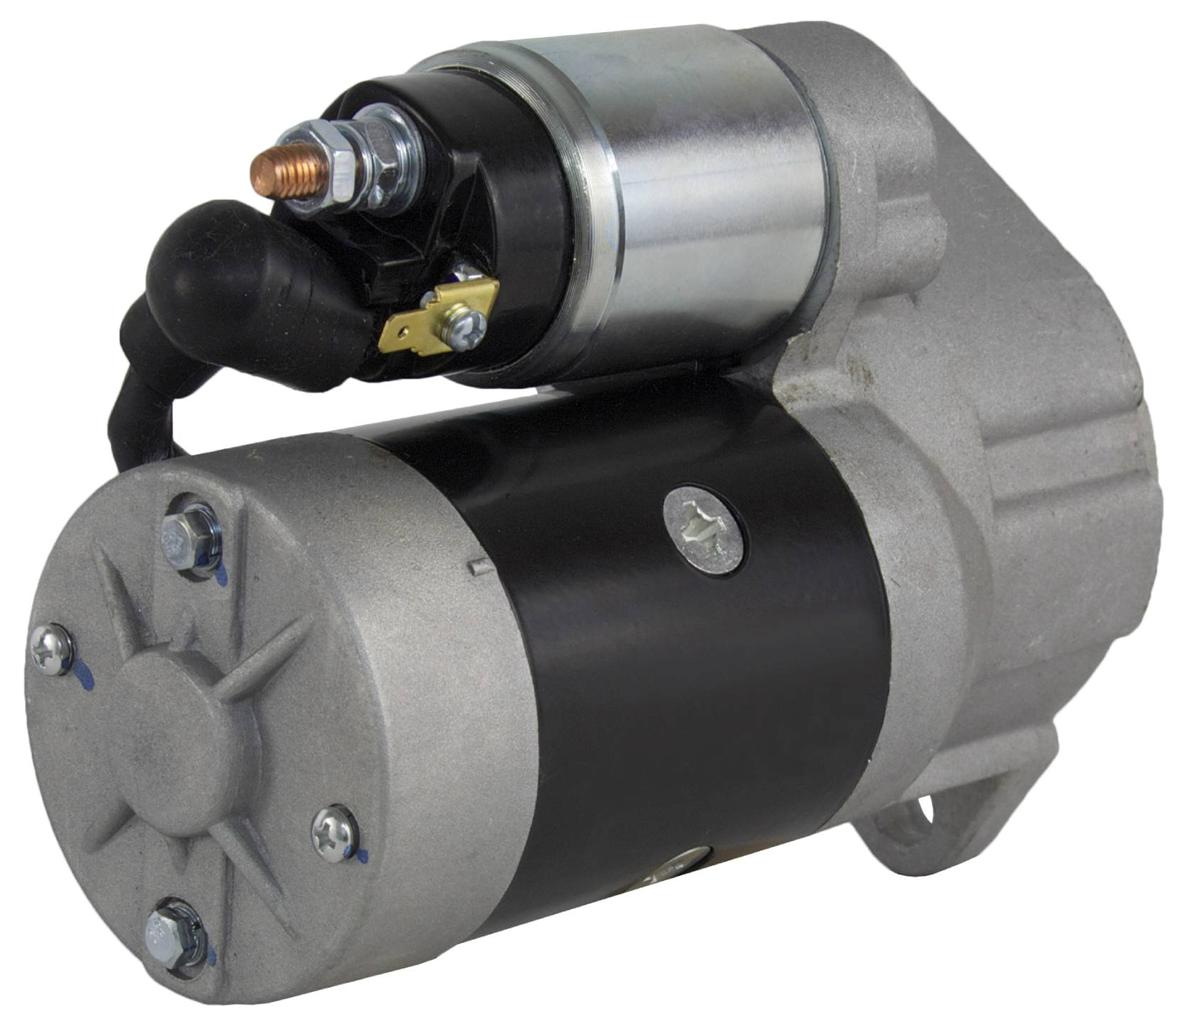 New starter fit motor ingersoll rand 185 p185 air for Air compressor motor starter